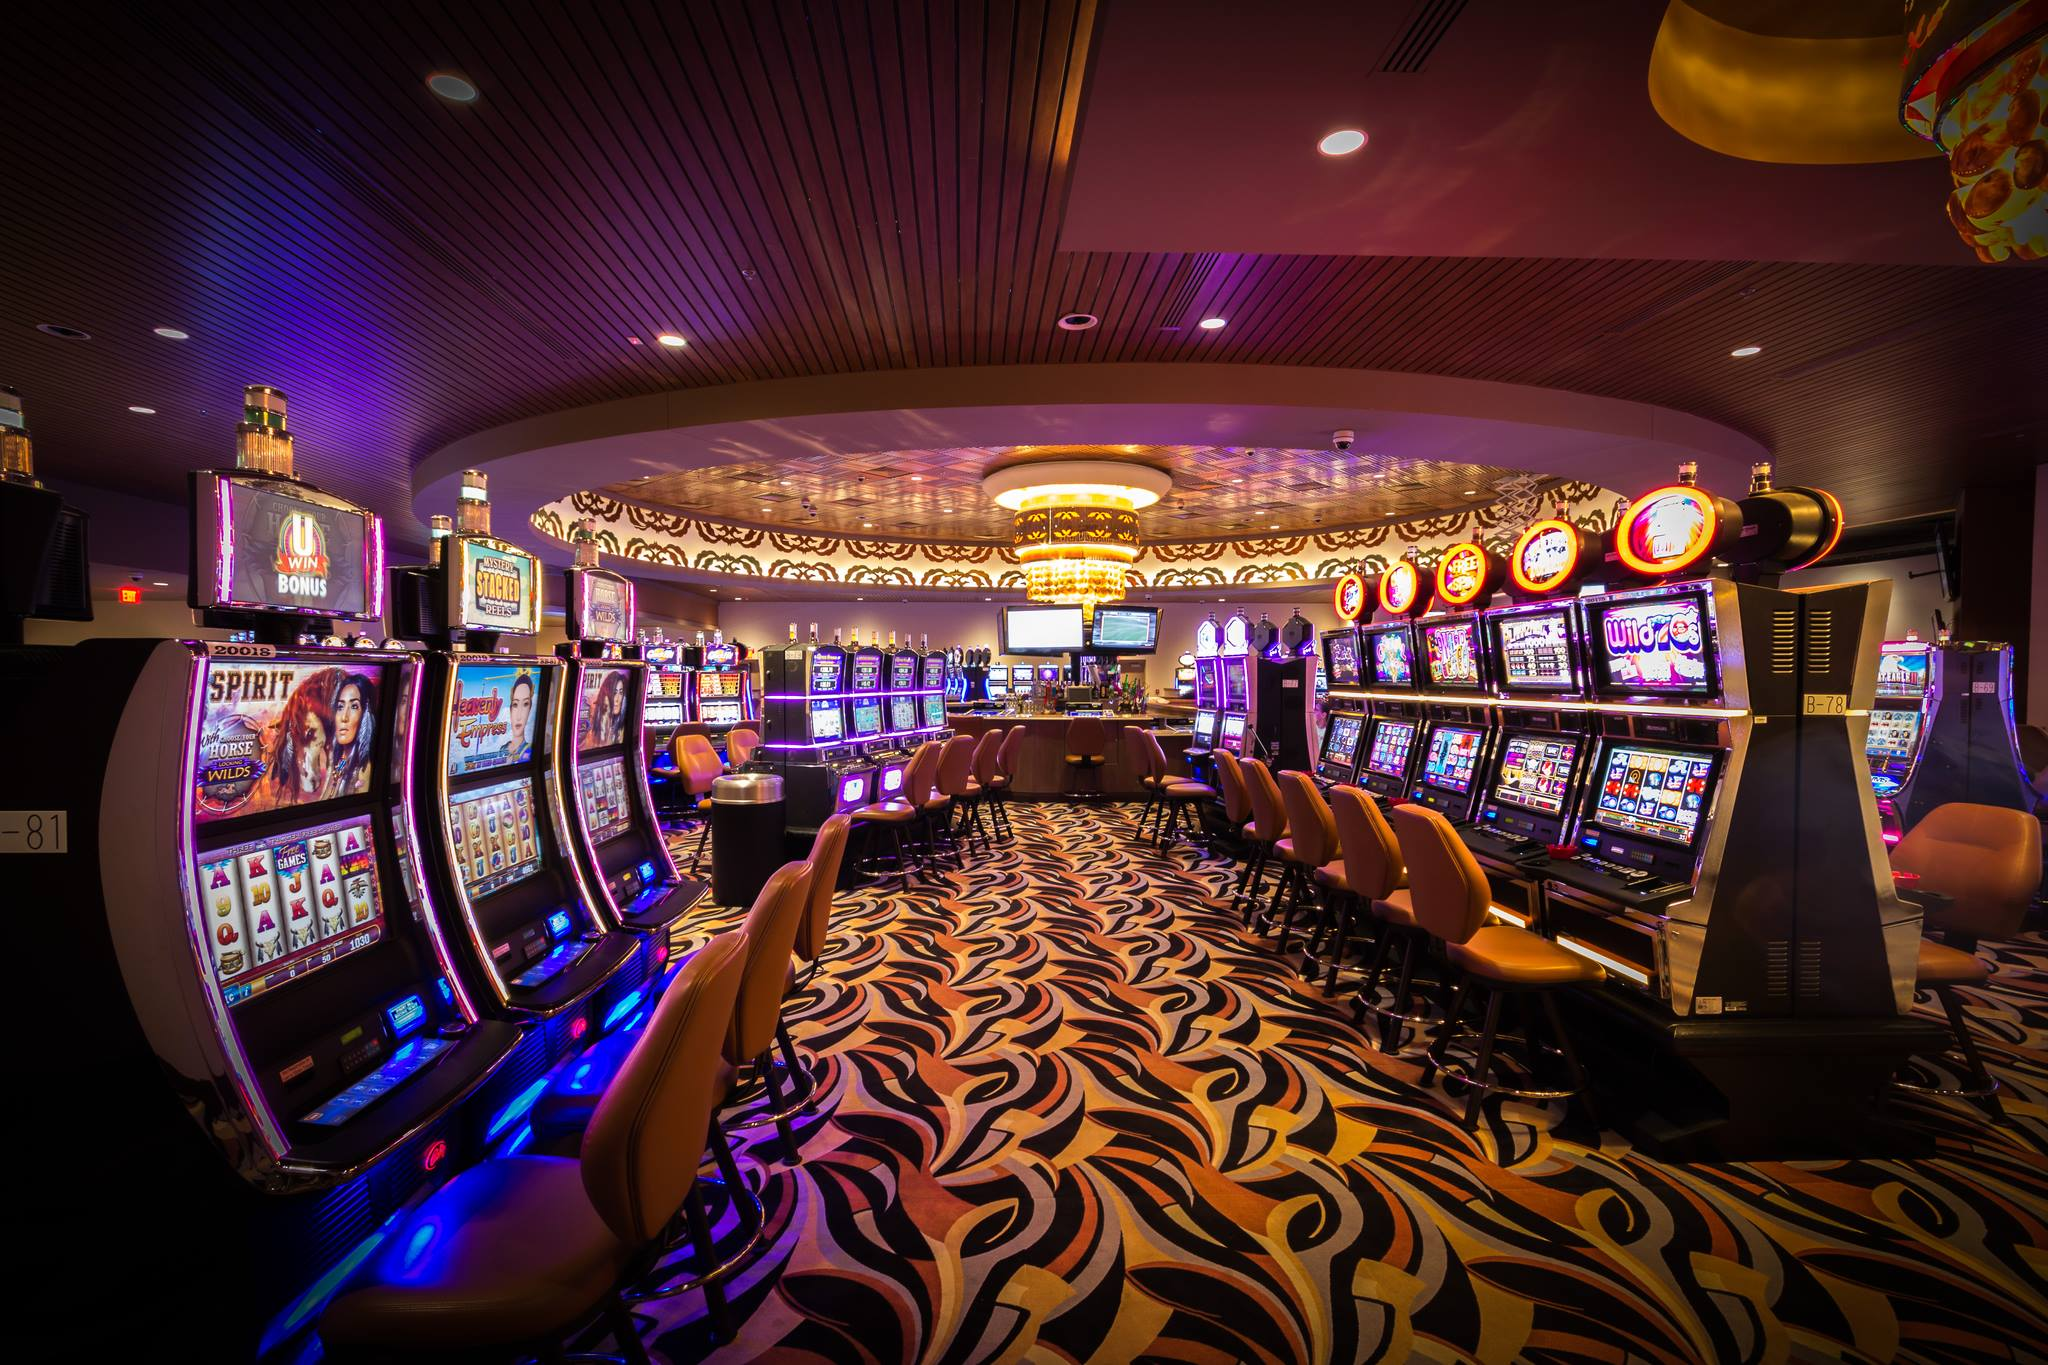 Casino Foe: 'We've subsidized the Indians for hundreds of years'